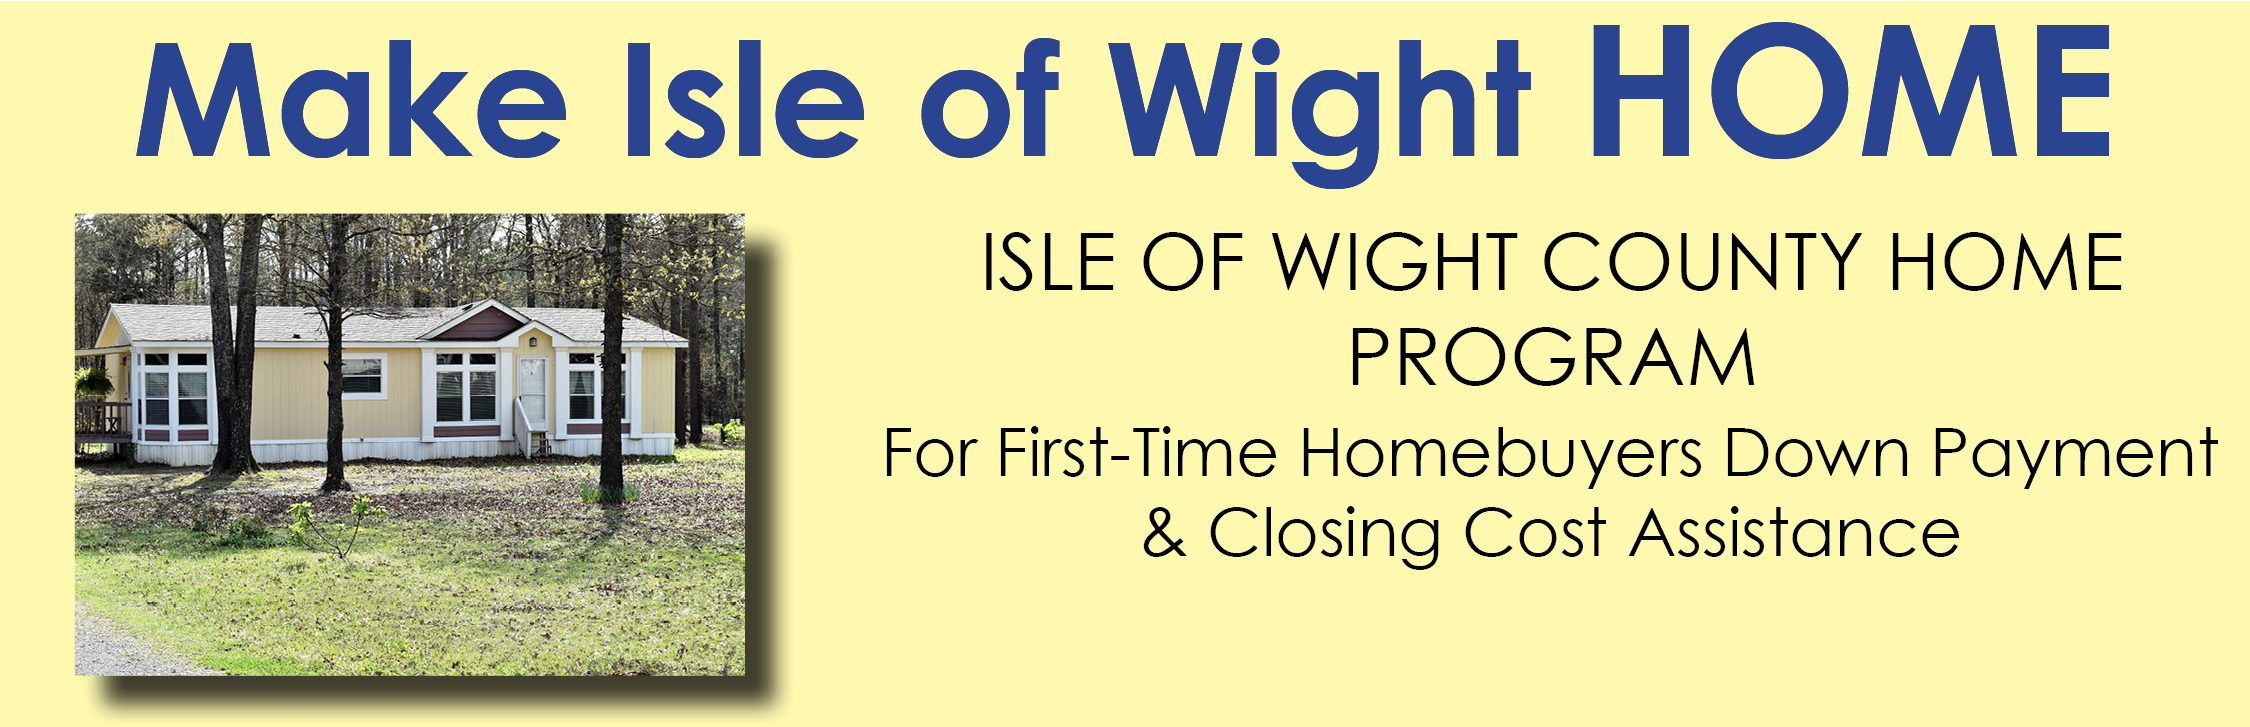 Make Isle of Wight HOME Program Banner